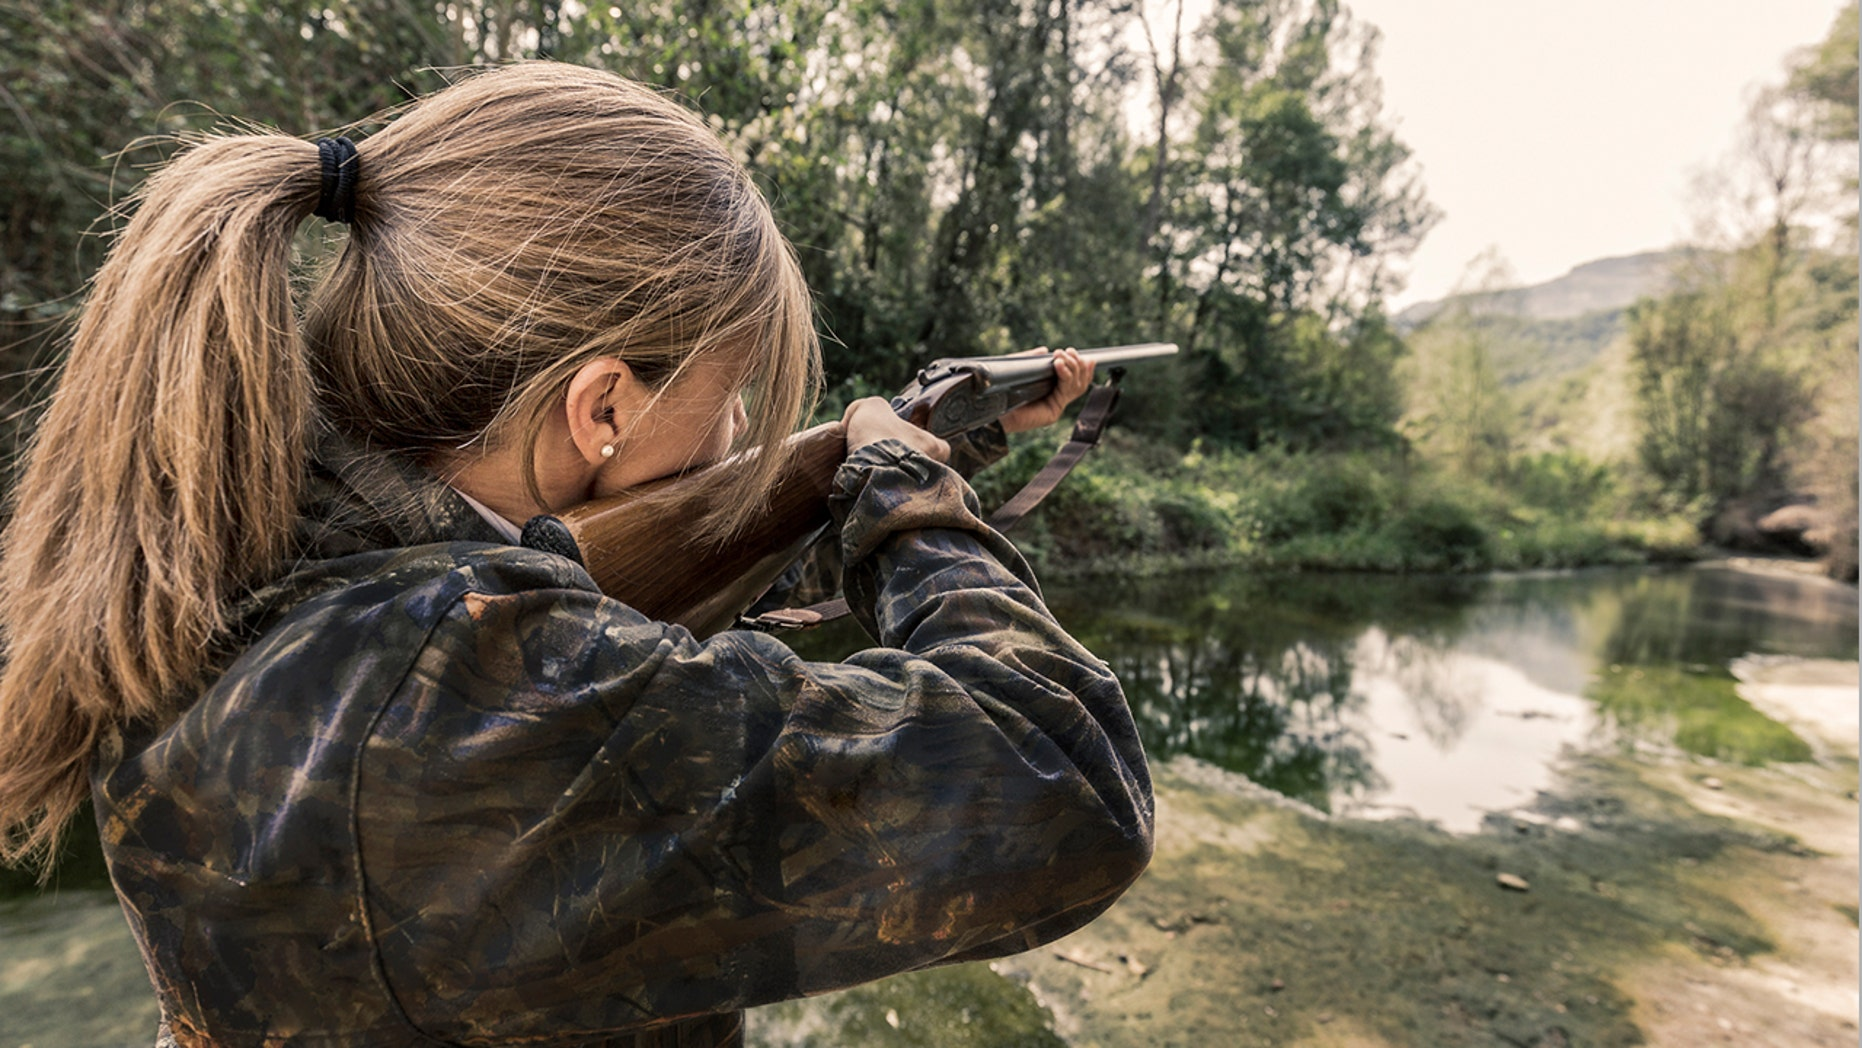 Hunting recruiters are trying to appeal more to millennials as numbers decline.